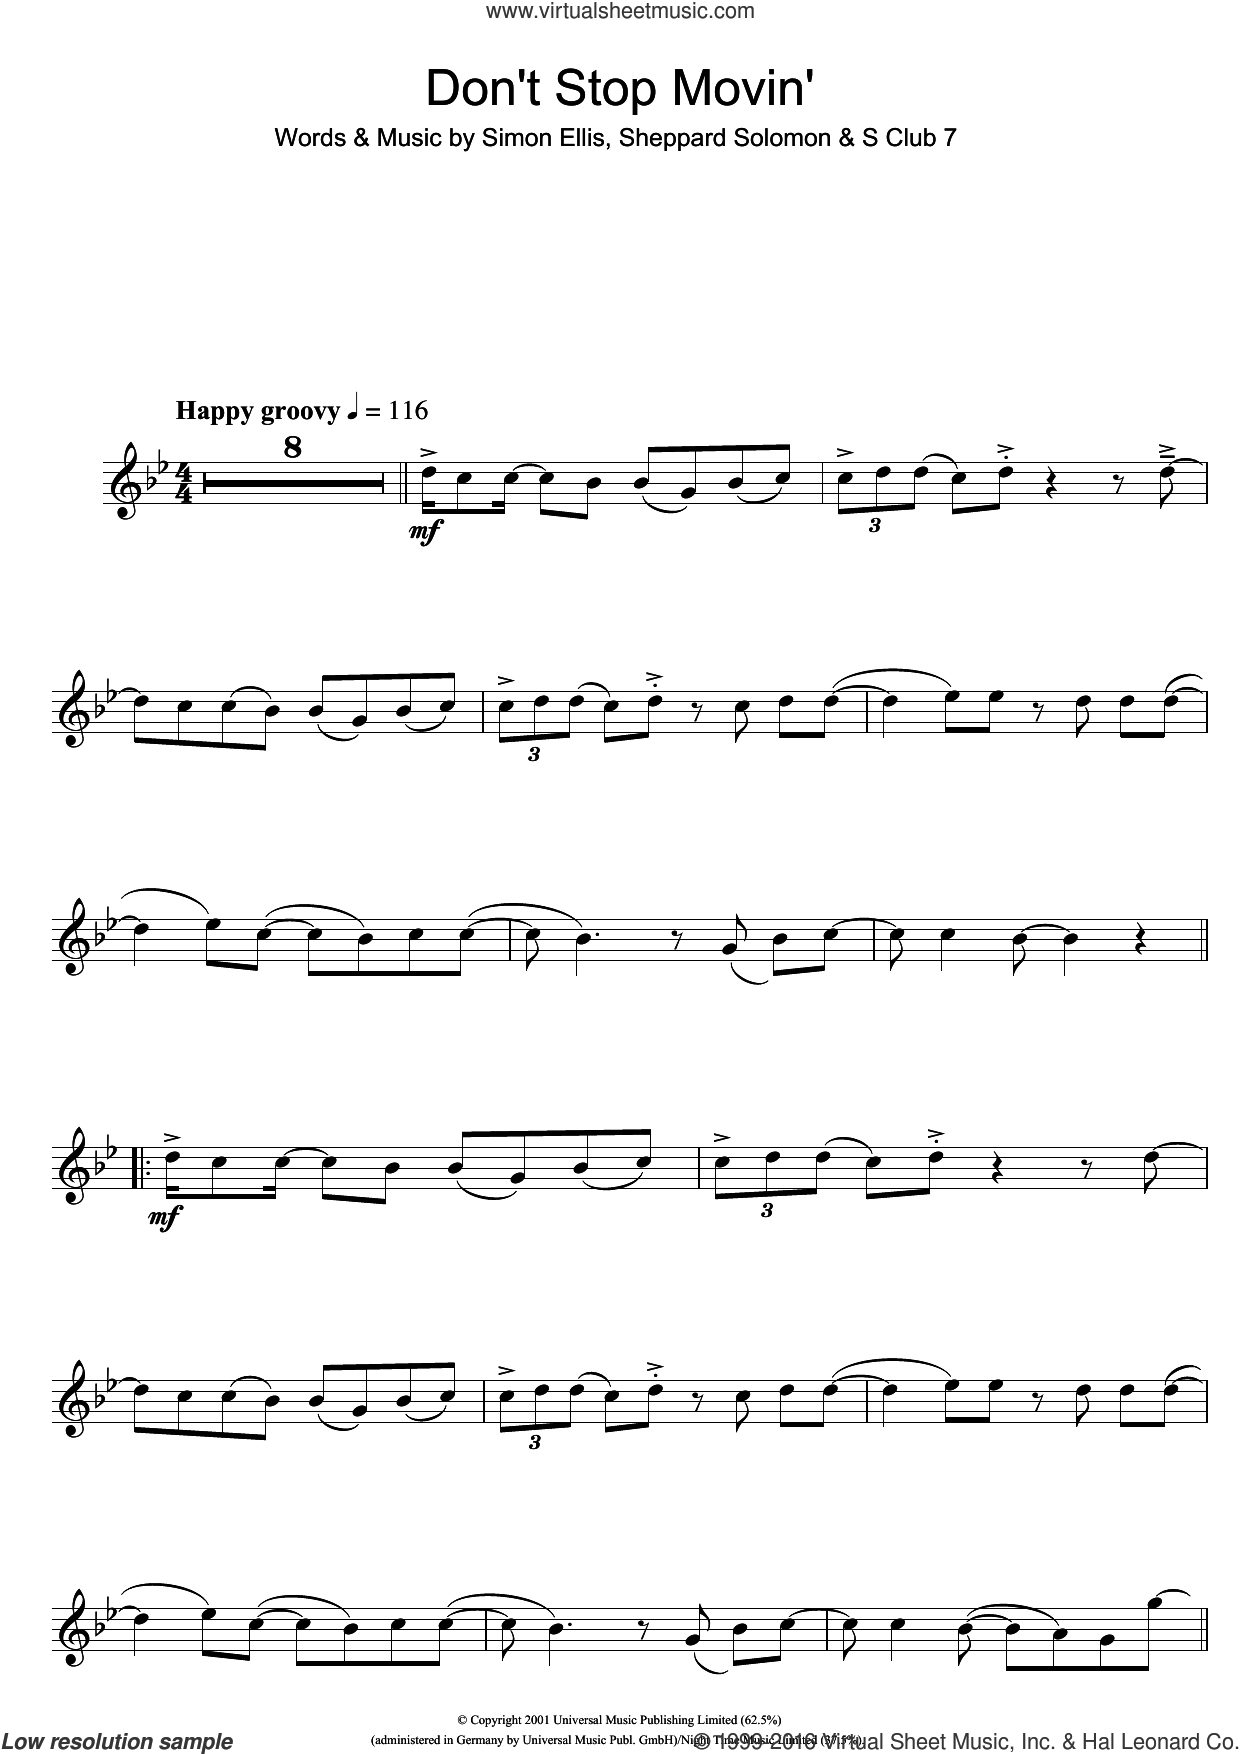 Don't Stop Movin' sheet music for flute solo by Simon Ellis, S Club 7 and Sheppard Solomon. Score Image Preview.